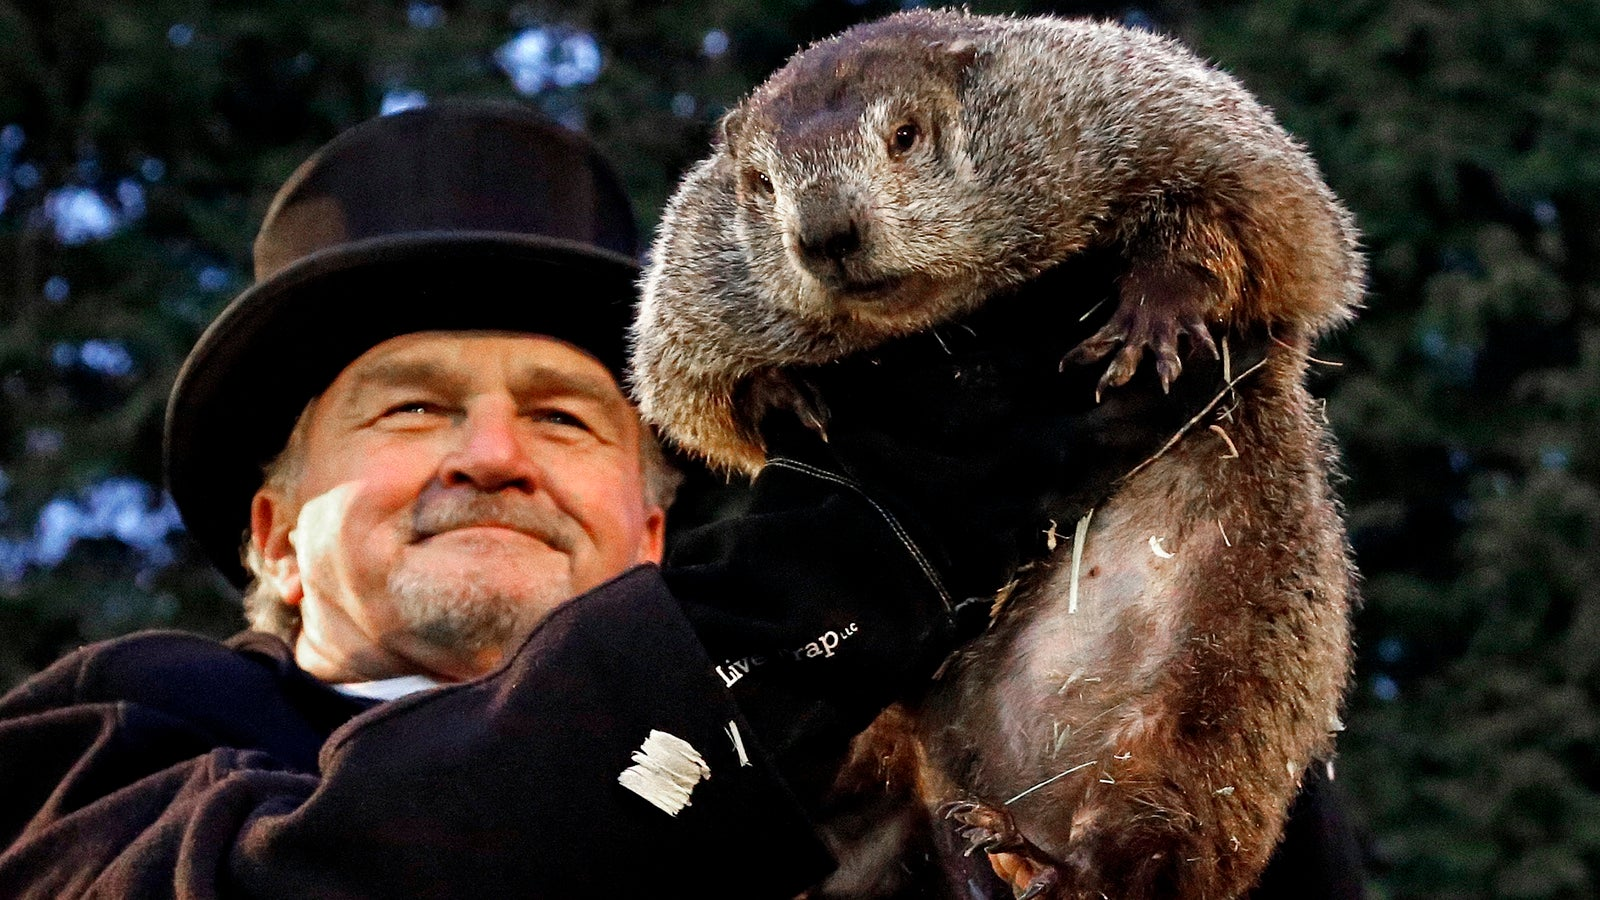 Climate Change Will Kill The Groundhog Day Groundhog